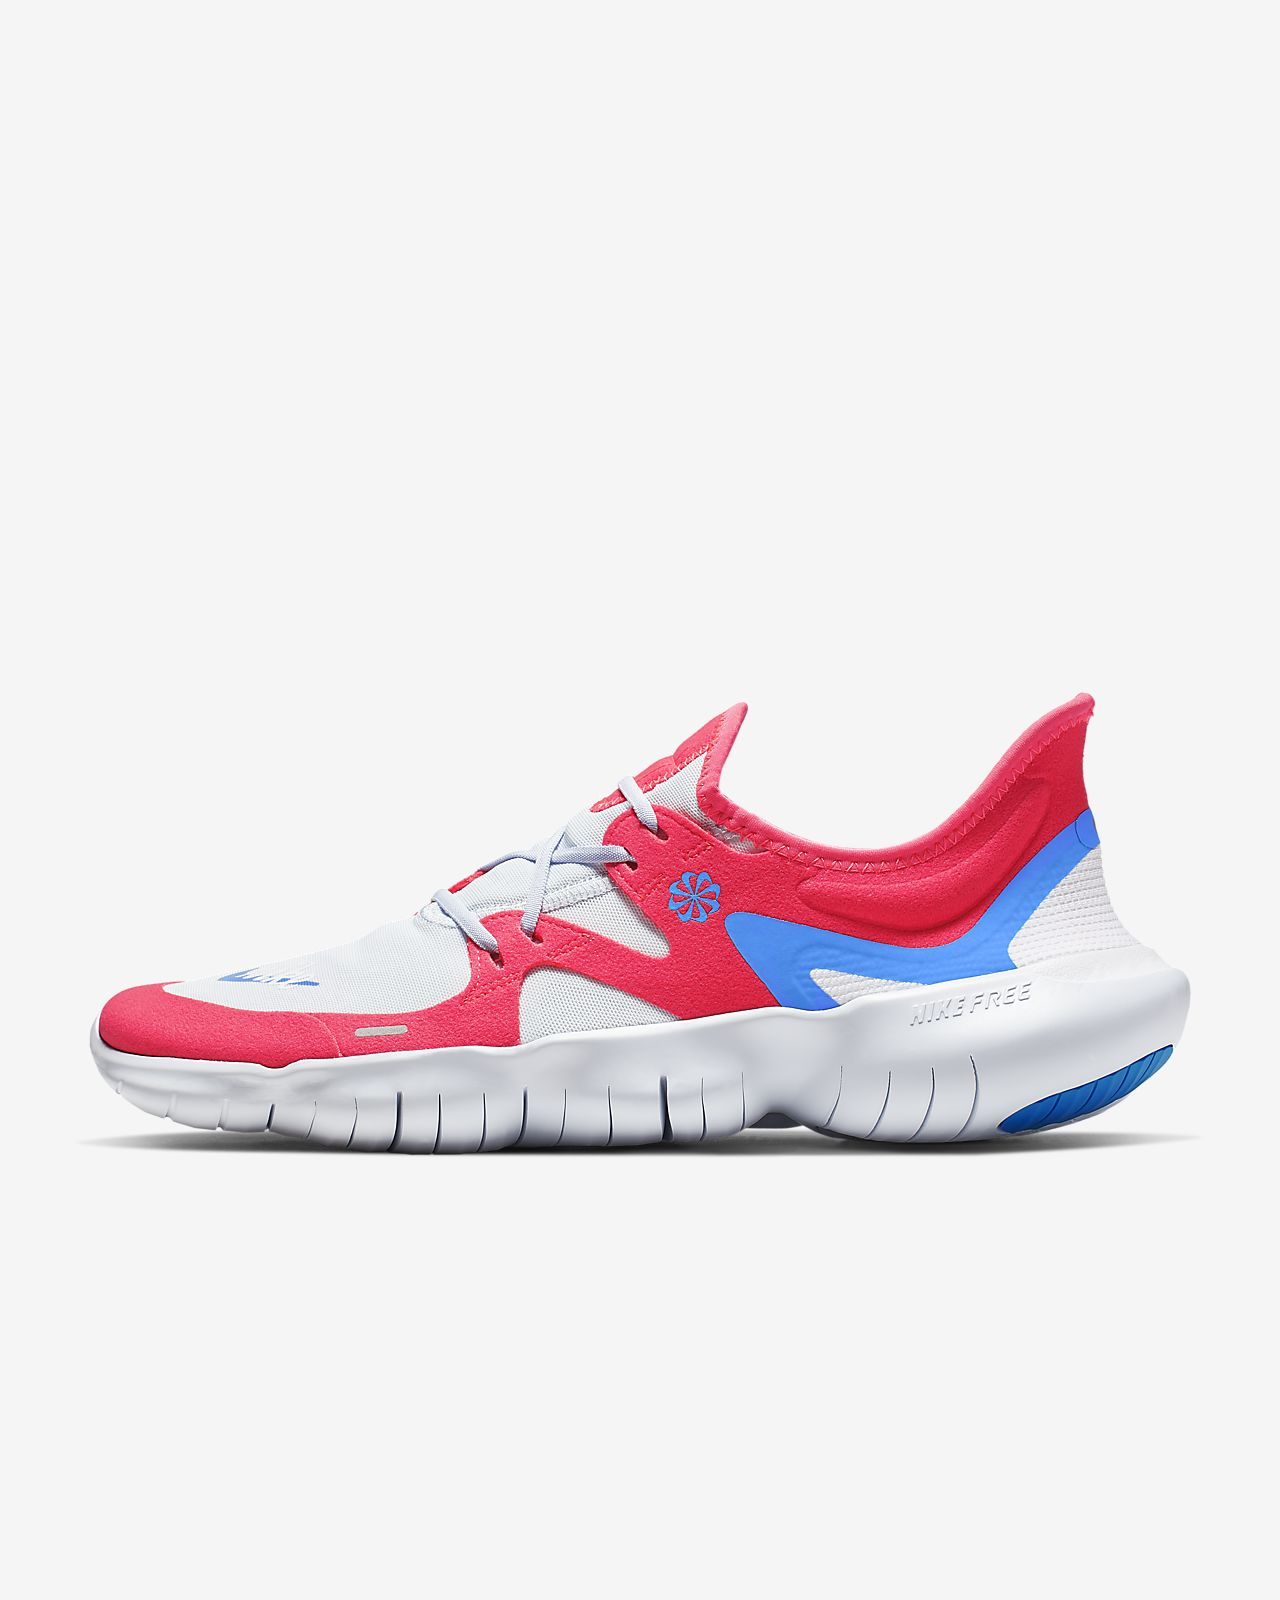 Détails sur basket nike free 5.0 running taille 41